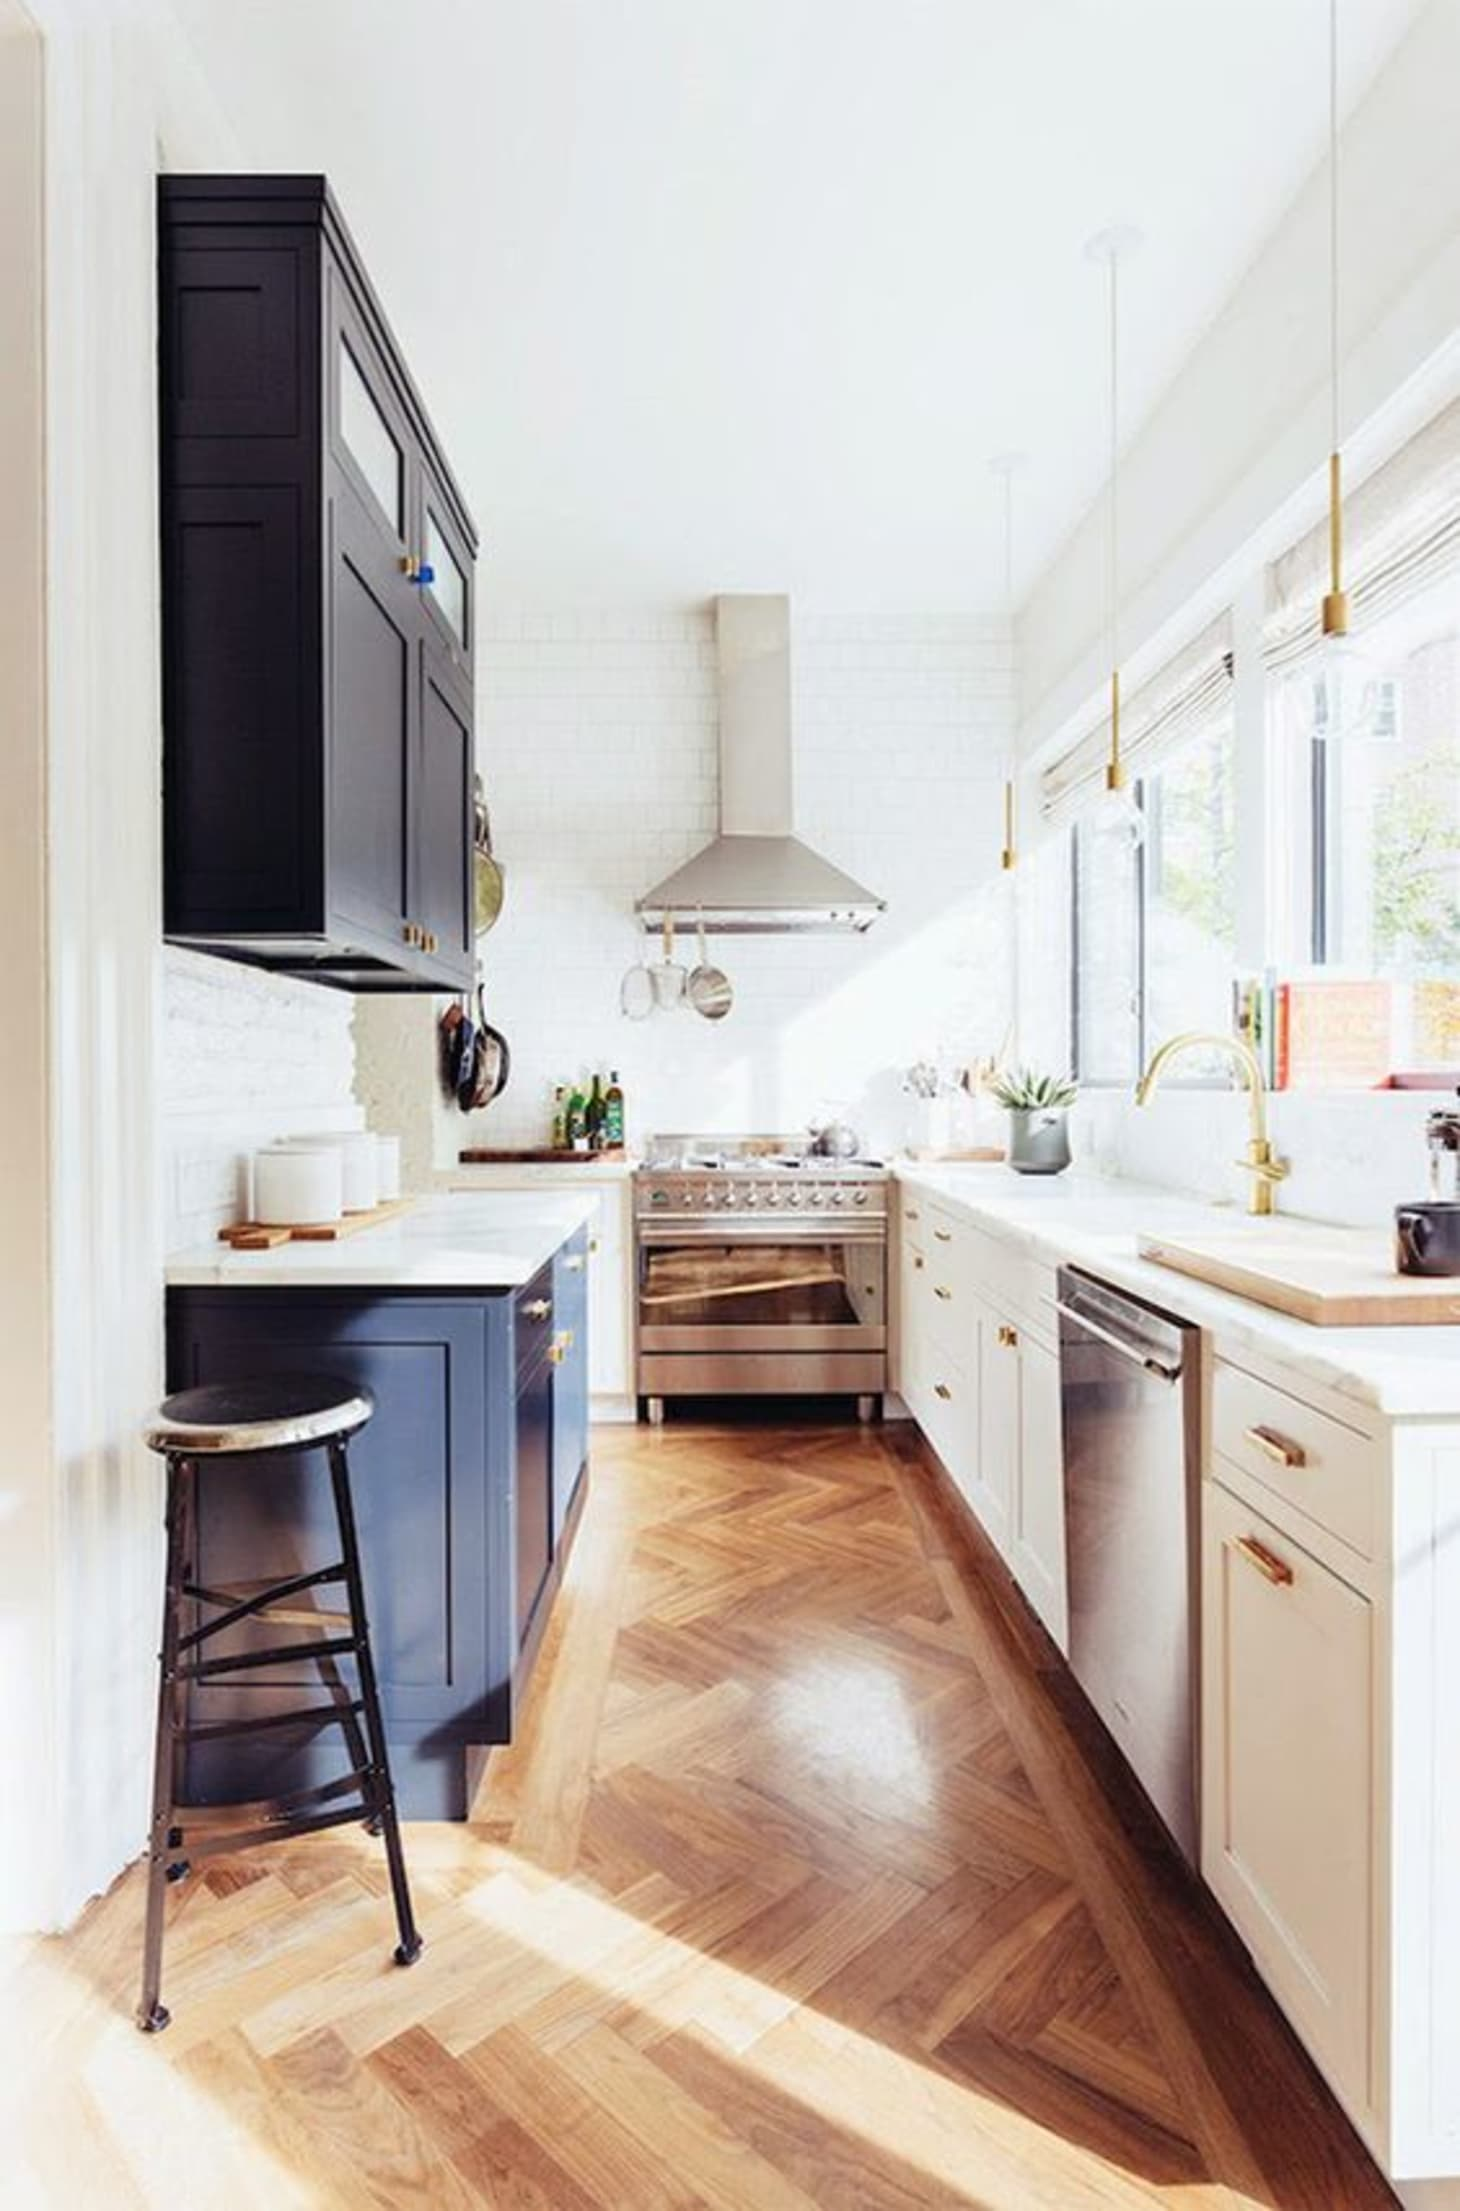 Galley Kitchen Inspiration - Design Decorating | Kitchn on